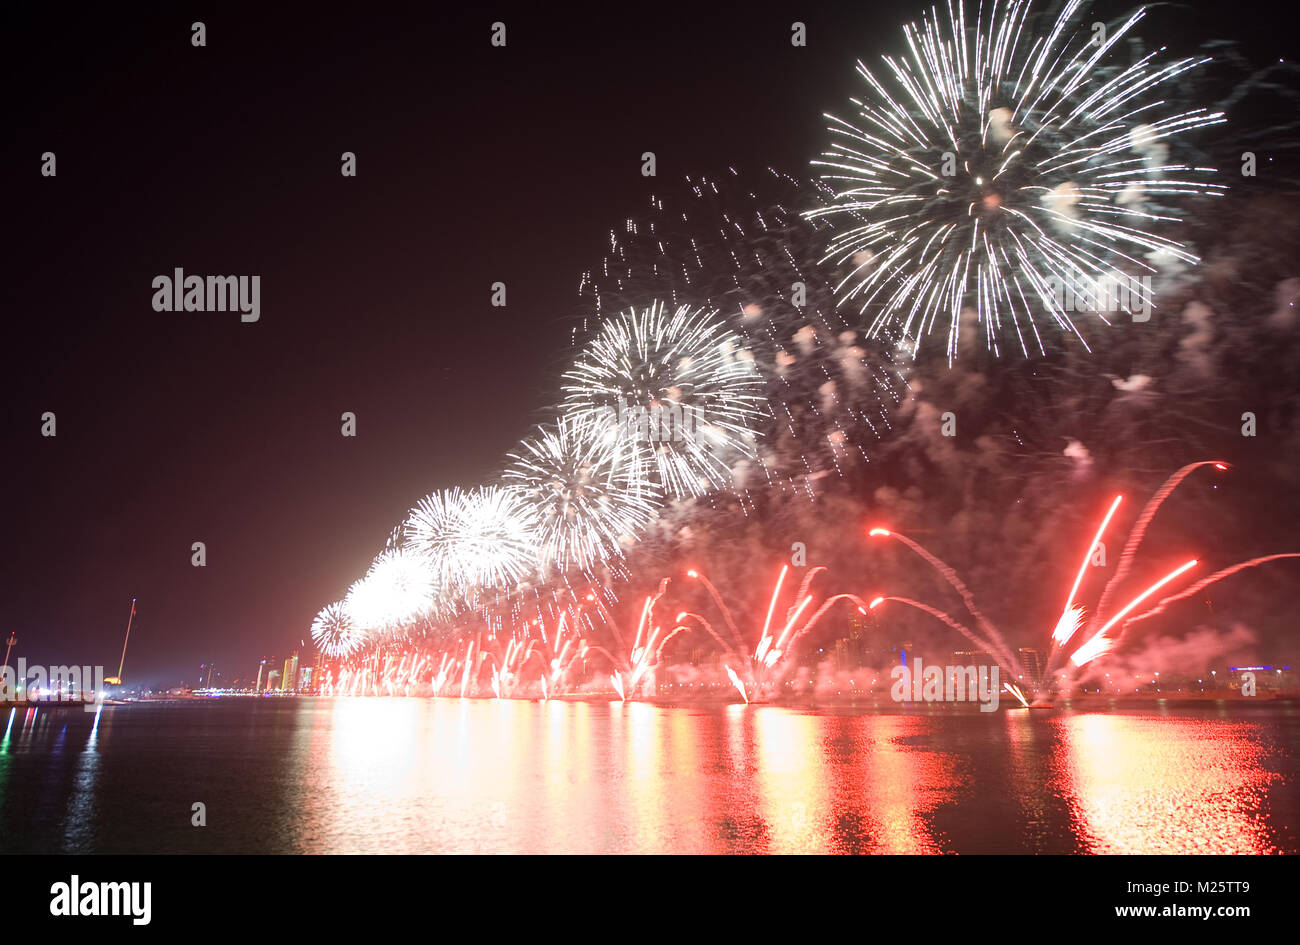 Fireworks show on new years eve 01-01-2018 in the bay of Abu Dhabi in the United Arab Emirates. - Stock Image